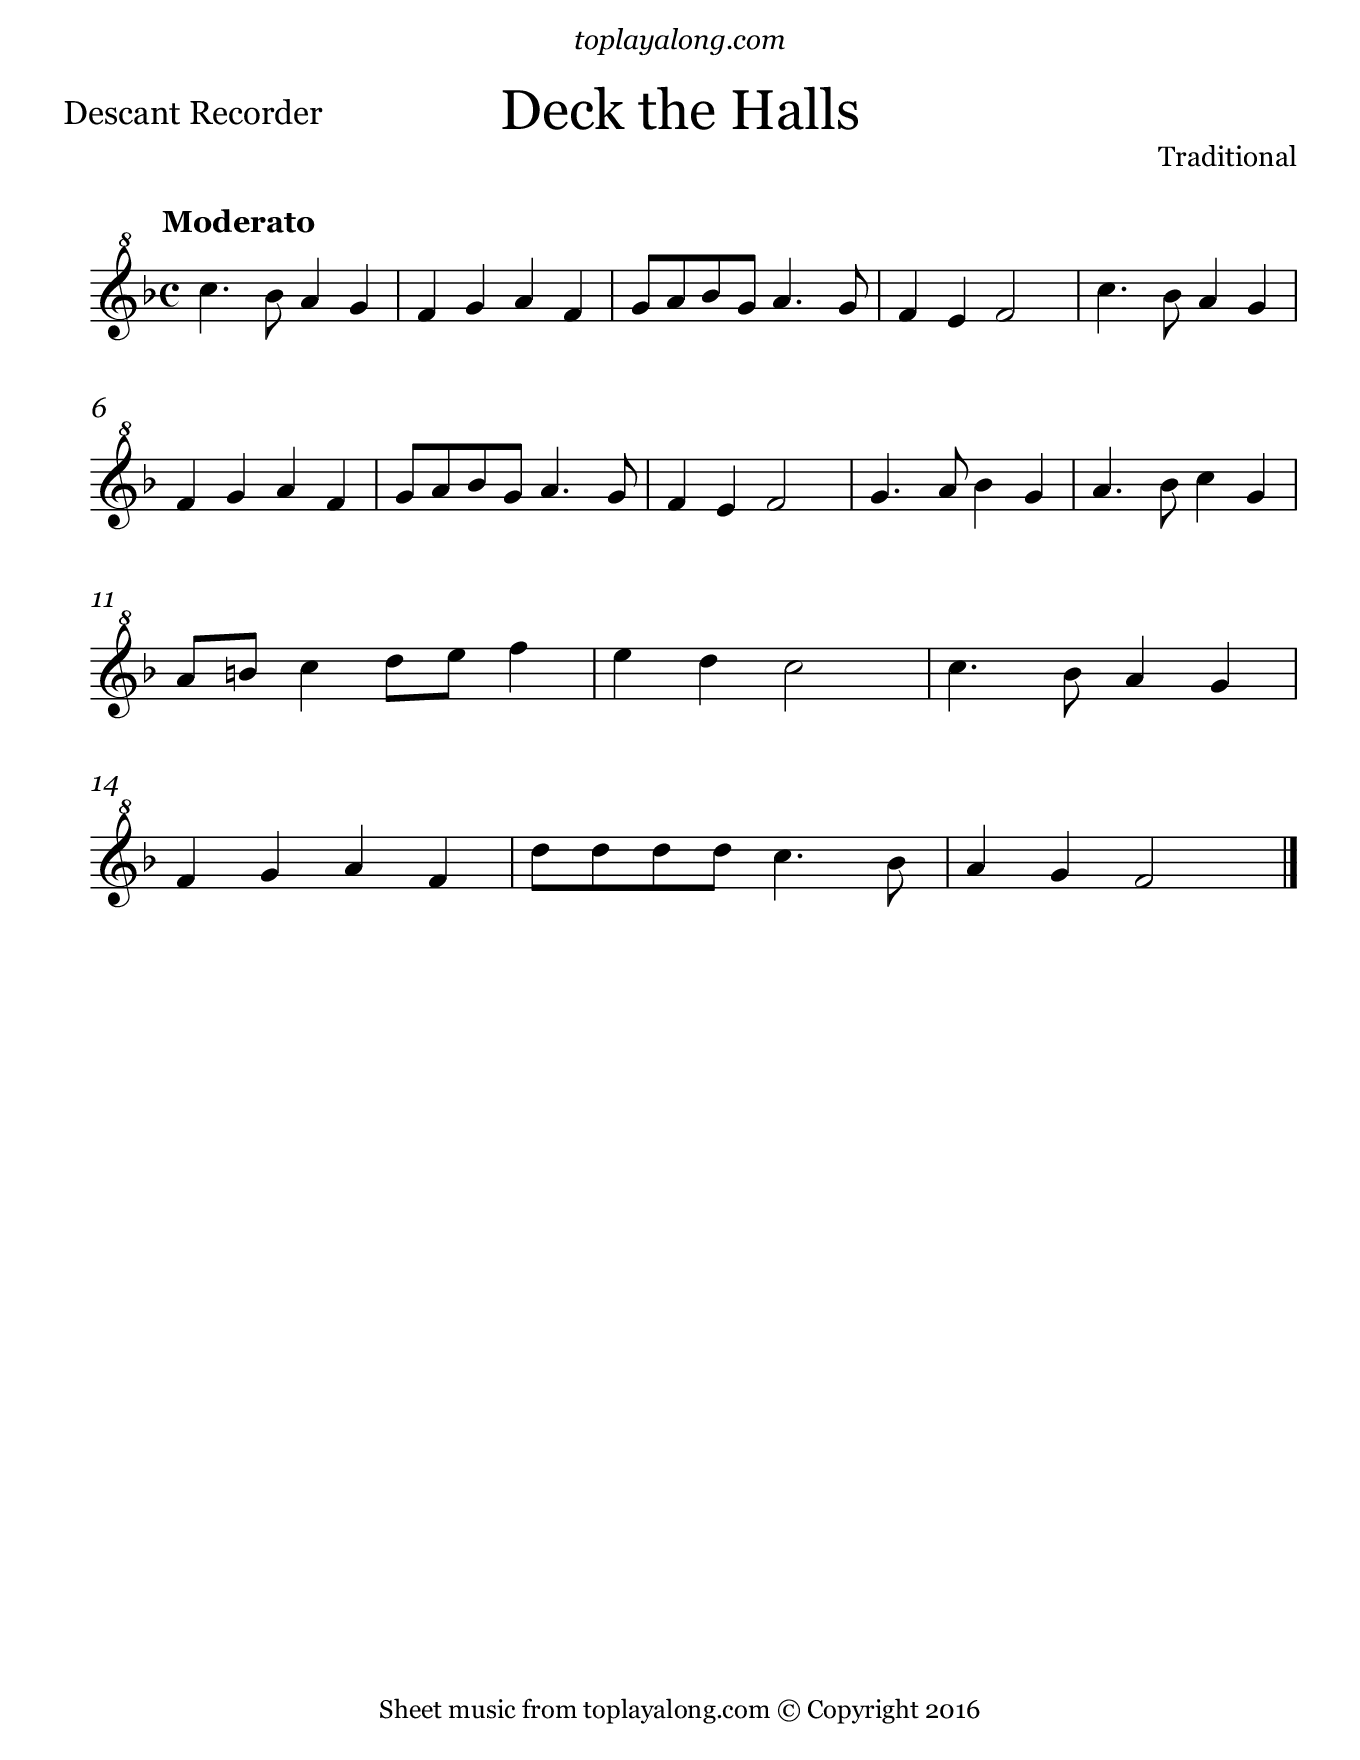 Deck the Halls. Sheet music for Recorder, page 1.